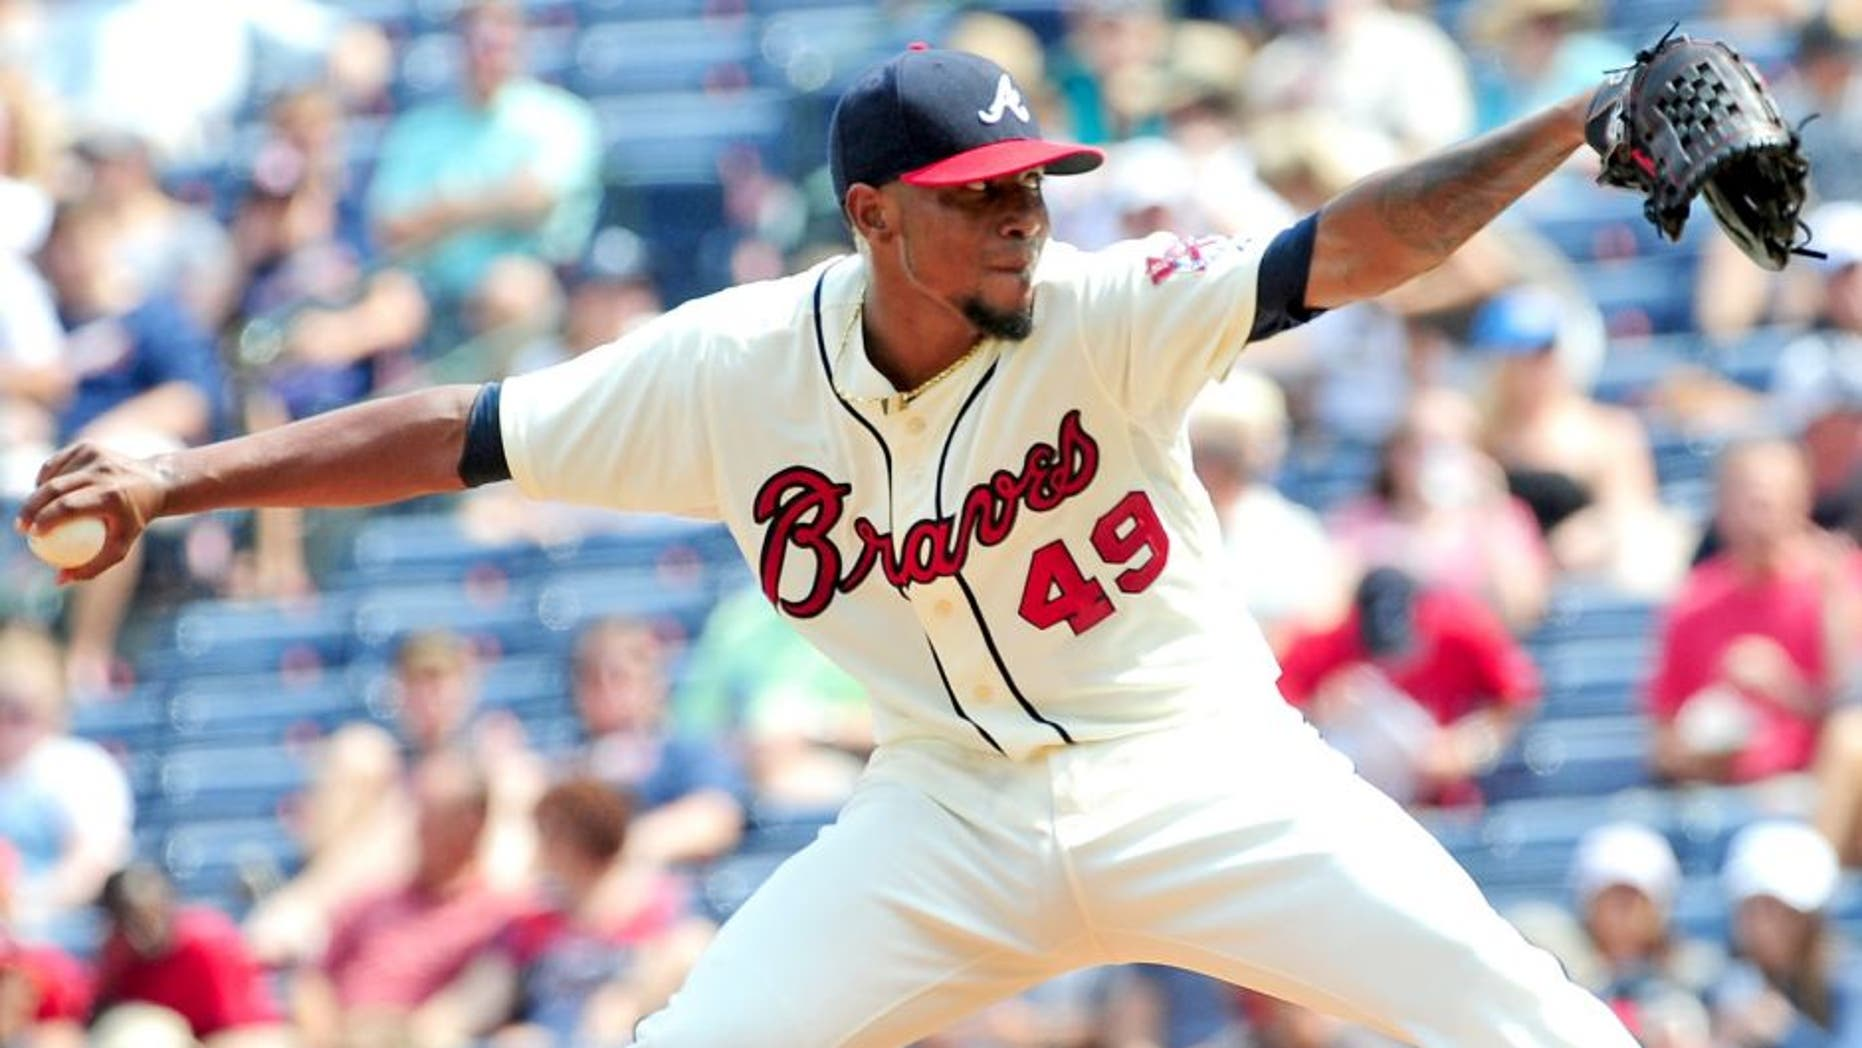 ATLANTA, GA - SEPTEMBER 20: Julio Teheran #49 of the Atlanta Braves throws a second inning pitch against the Philadelphia Philiies at Turner Field on September 20, 2015 in Atlanta, Georgia. (Photo by Scott Cunningham/Getty Images)